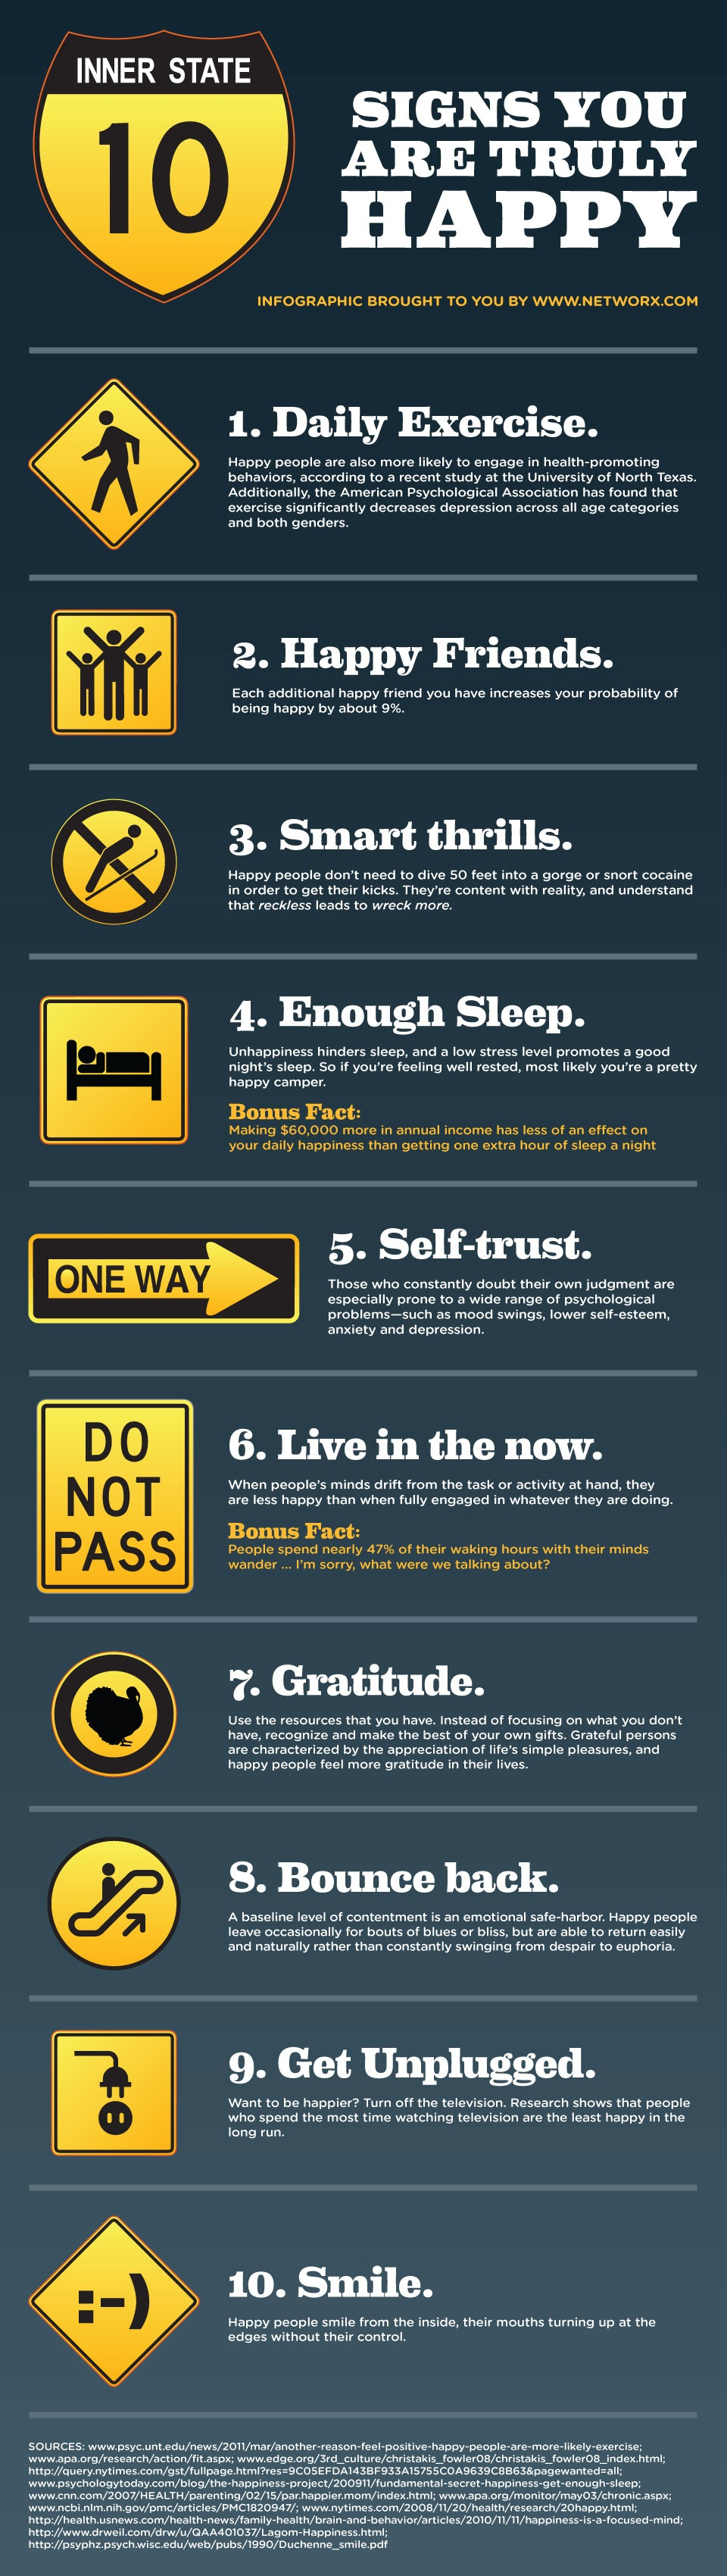 10 Signs of True Happiness - Networx